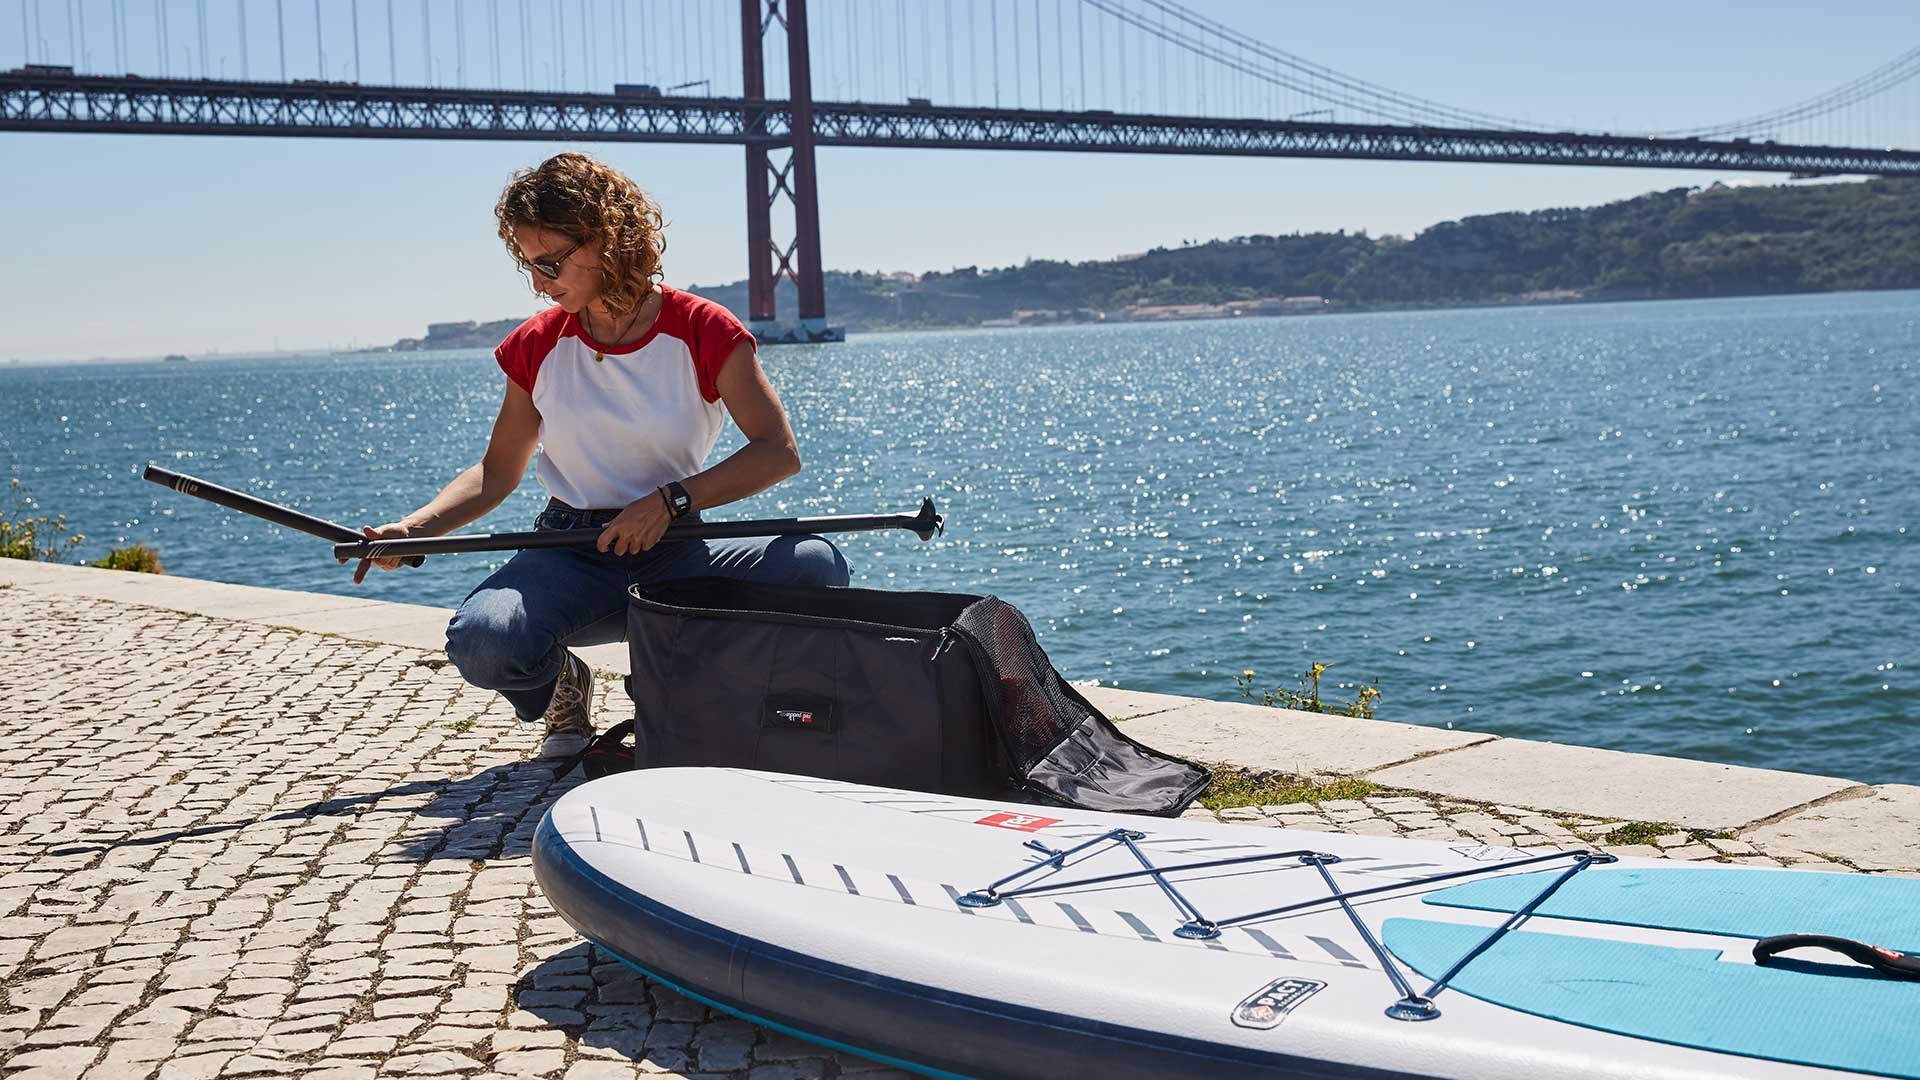 redpaddleco-96-compact-inflatable-paddle-board-inflatable-paddle-board-desktop-gallery-cargo